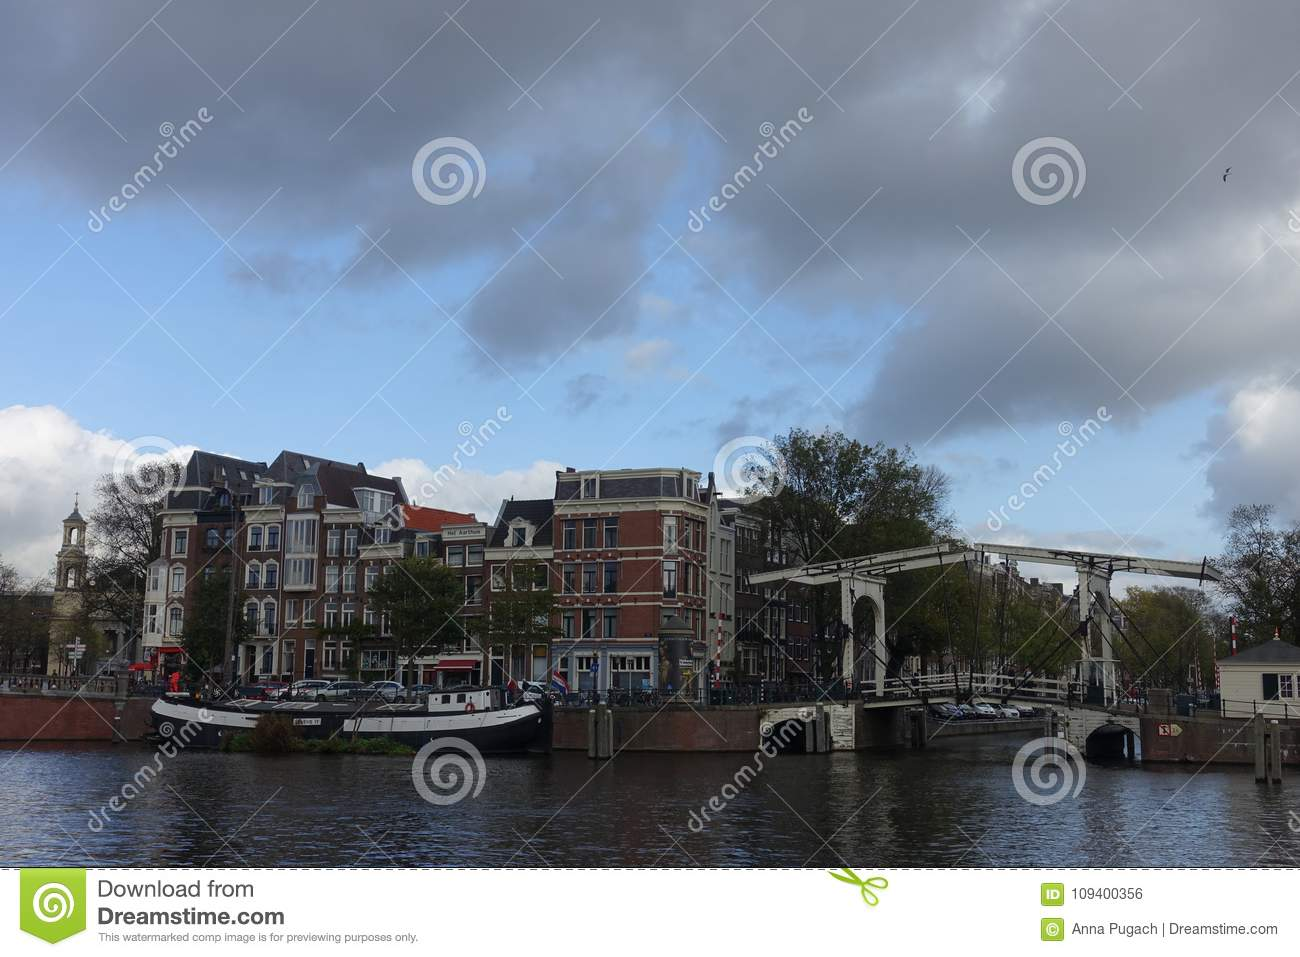 Houses and Walter Suskindbrug next to Amstel river in Amsterdam